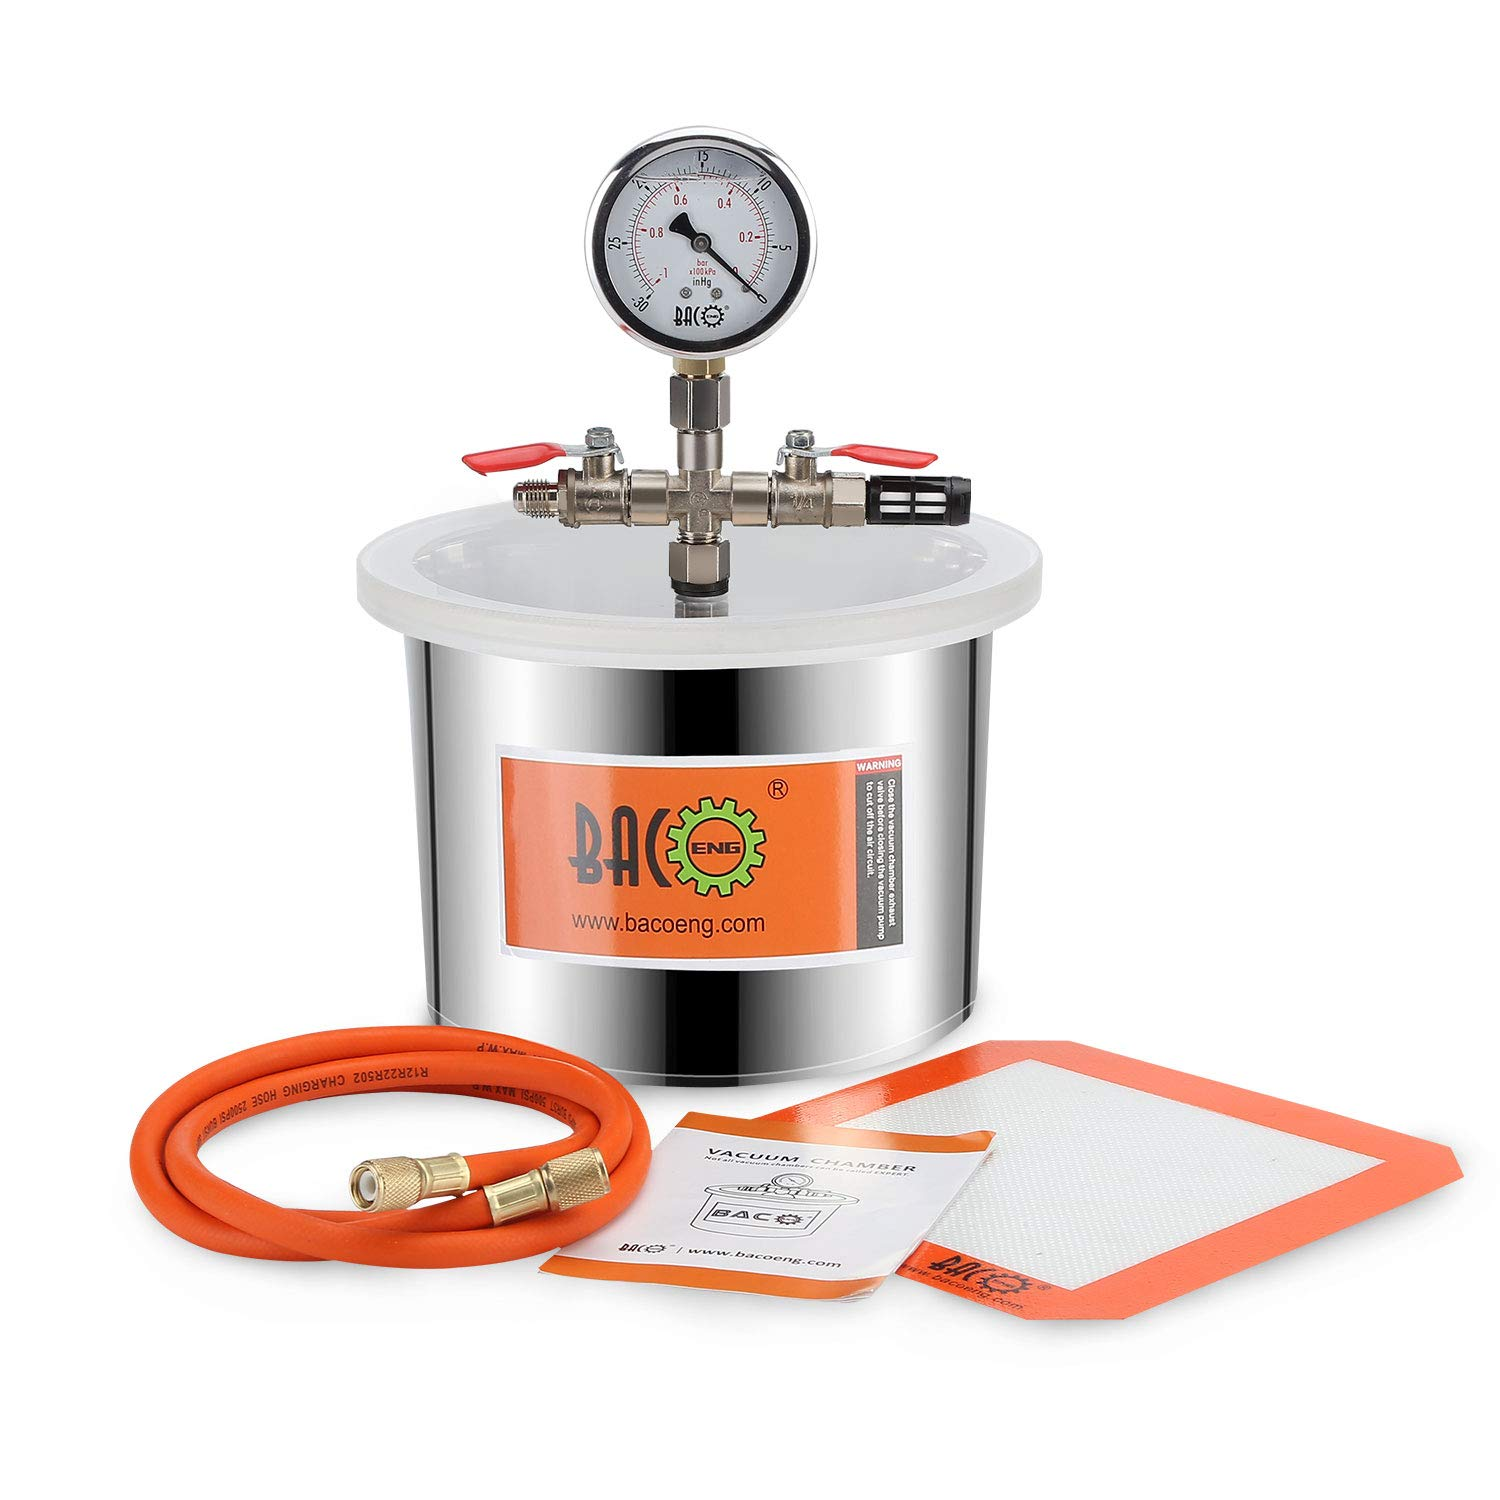 BACOENG 1.5 Gallon Stainless Steel Vacuum Chamber Silicone Kit for Degassing Resins, Silicone and Epoxies by BACOENG (Image #1)